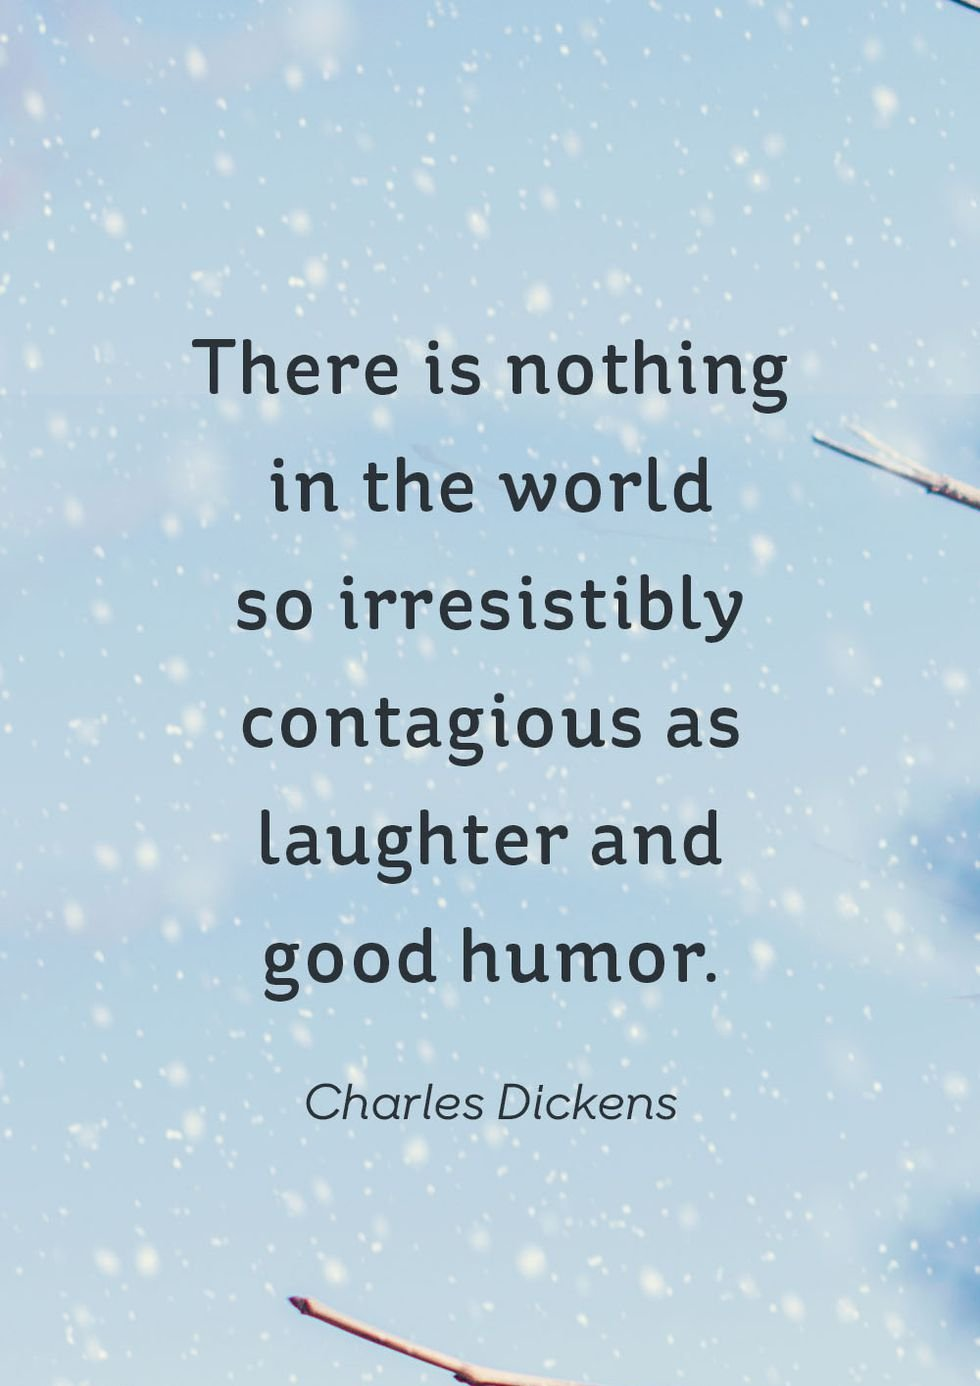 60 Best Christmas Quotes Images for Festive Season